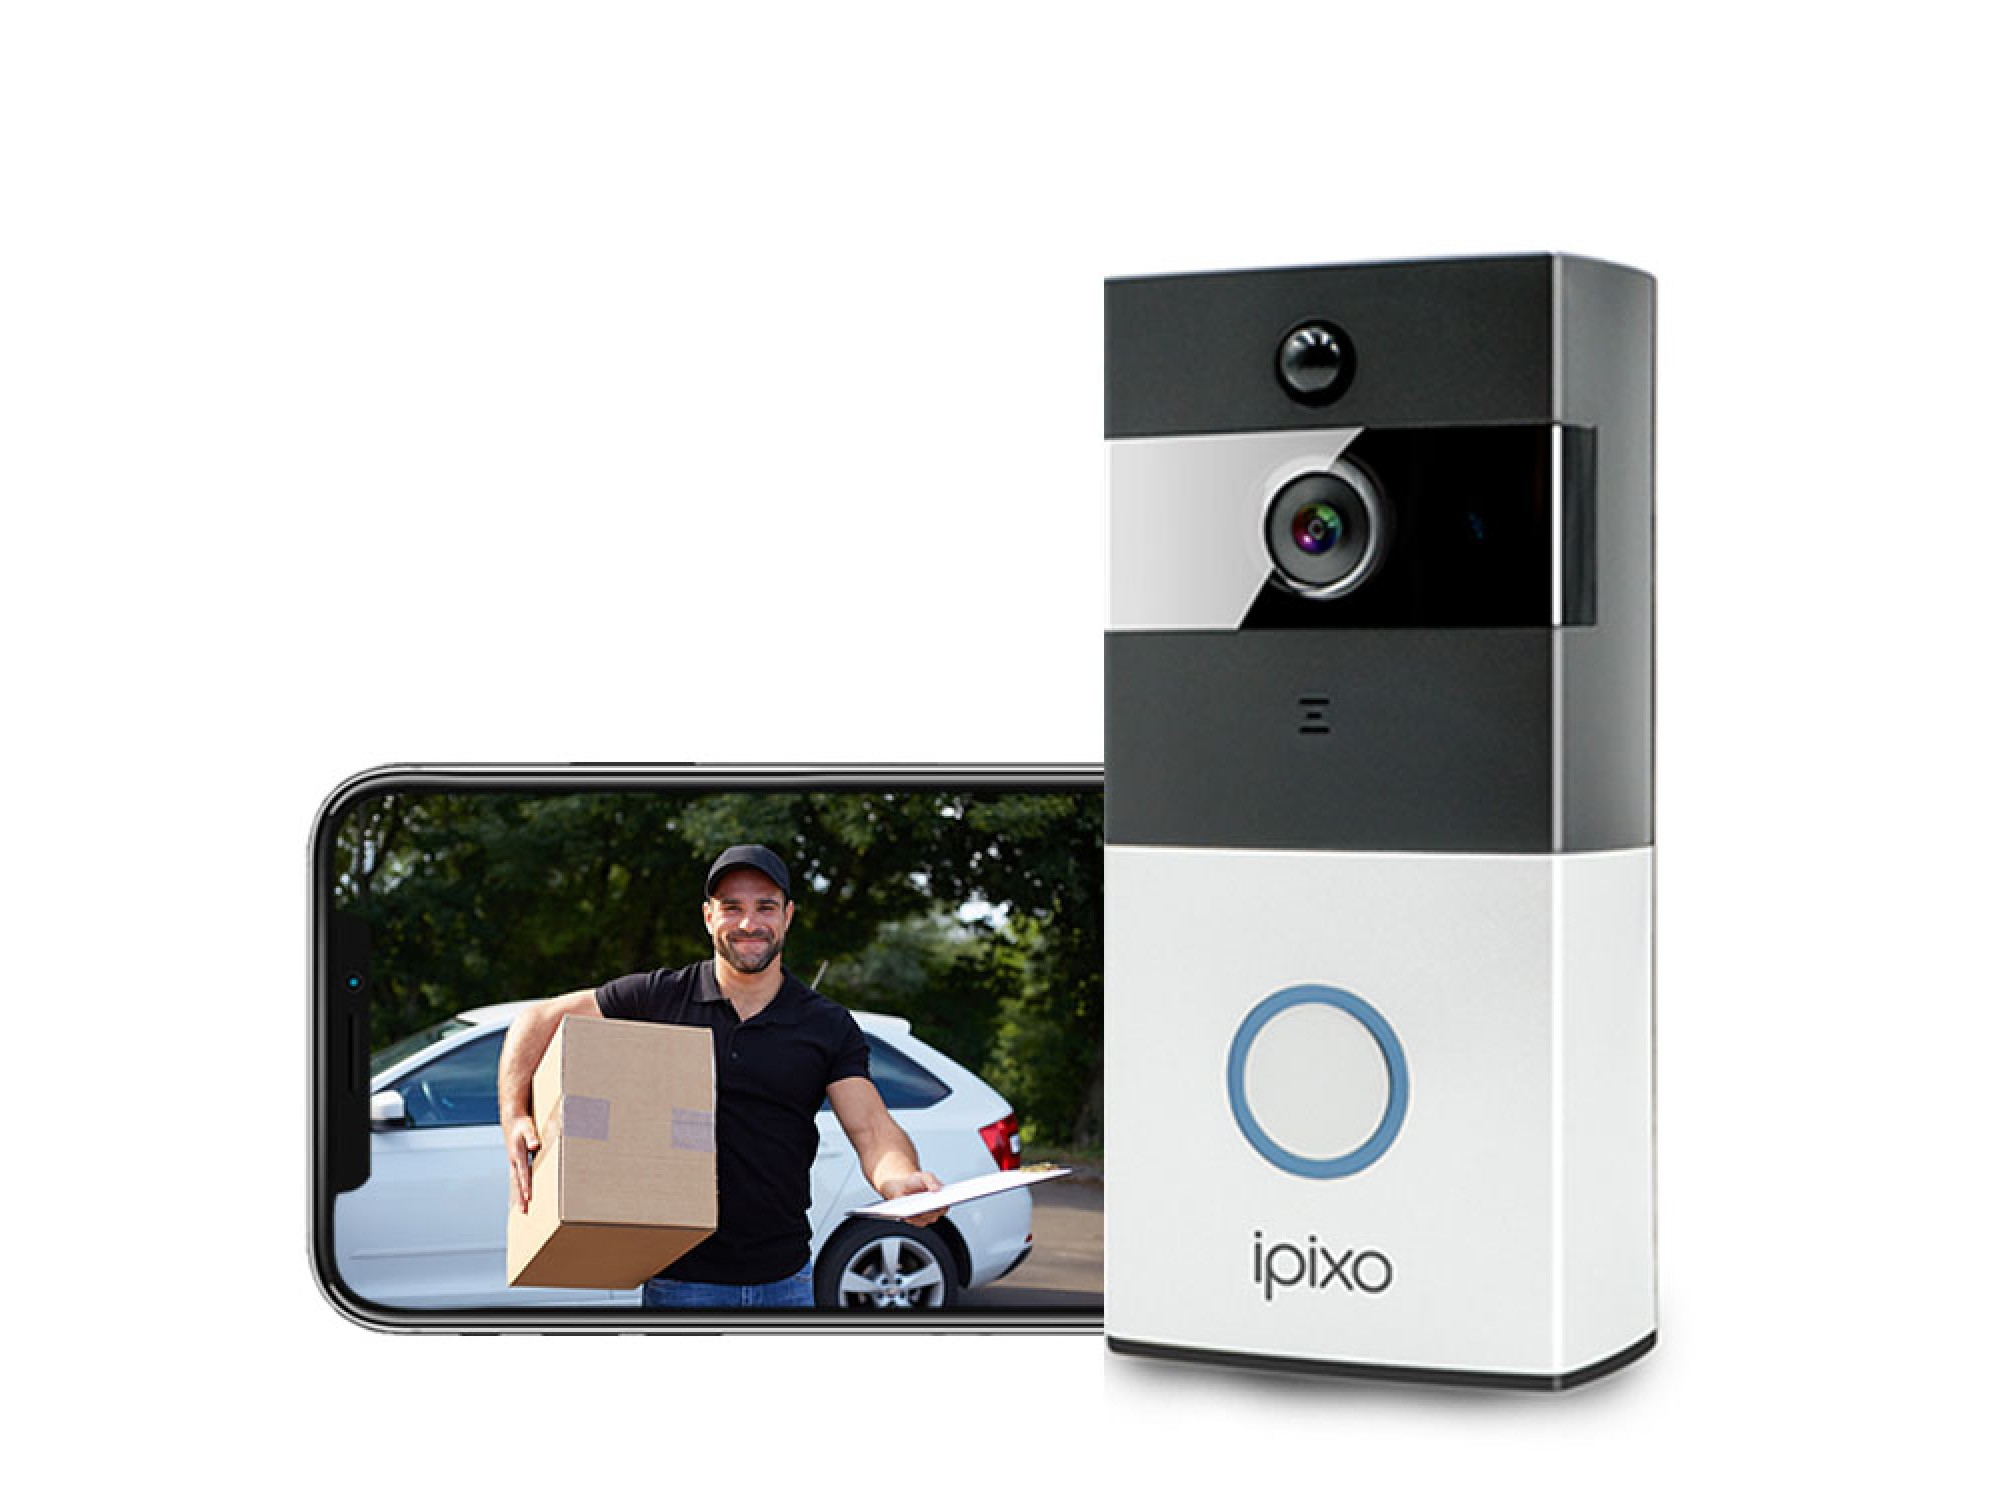 ipixo Wireless Video Doorbell Camera with Chime